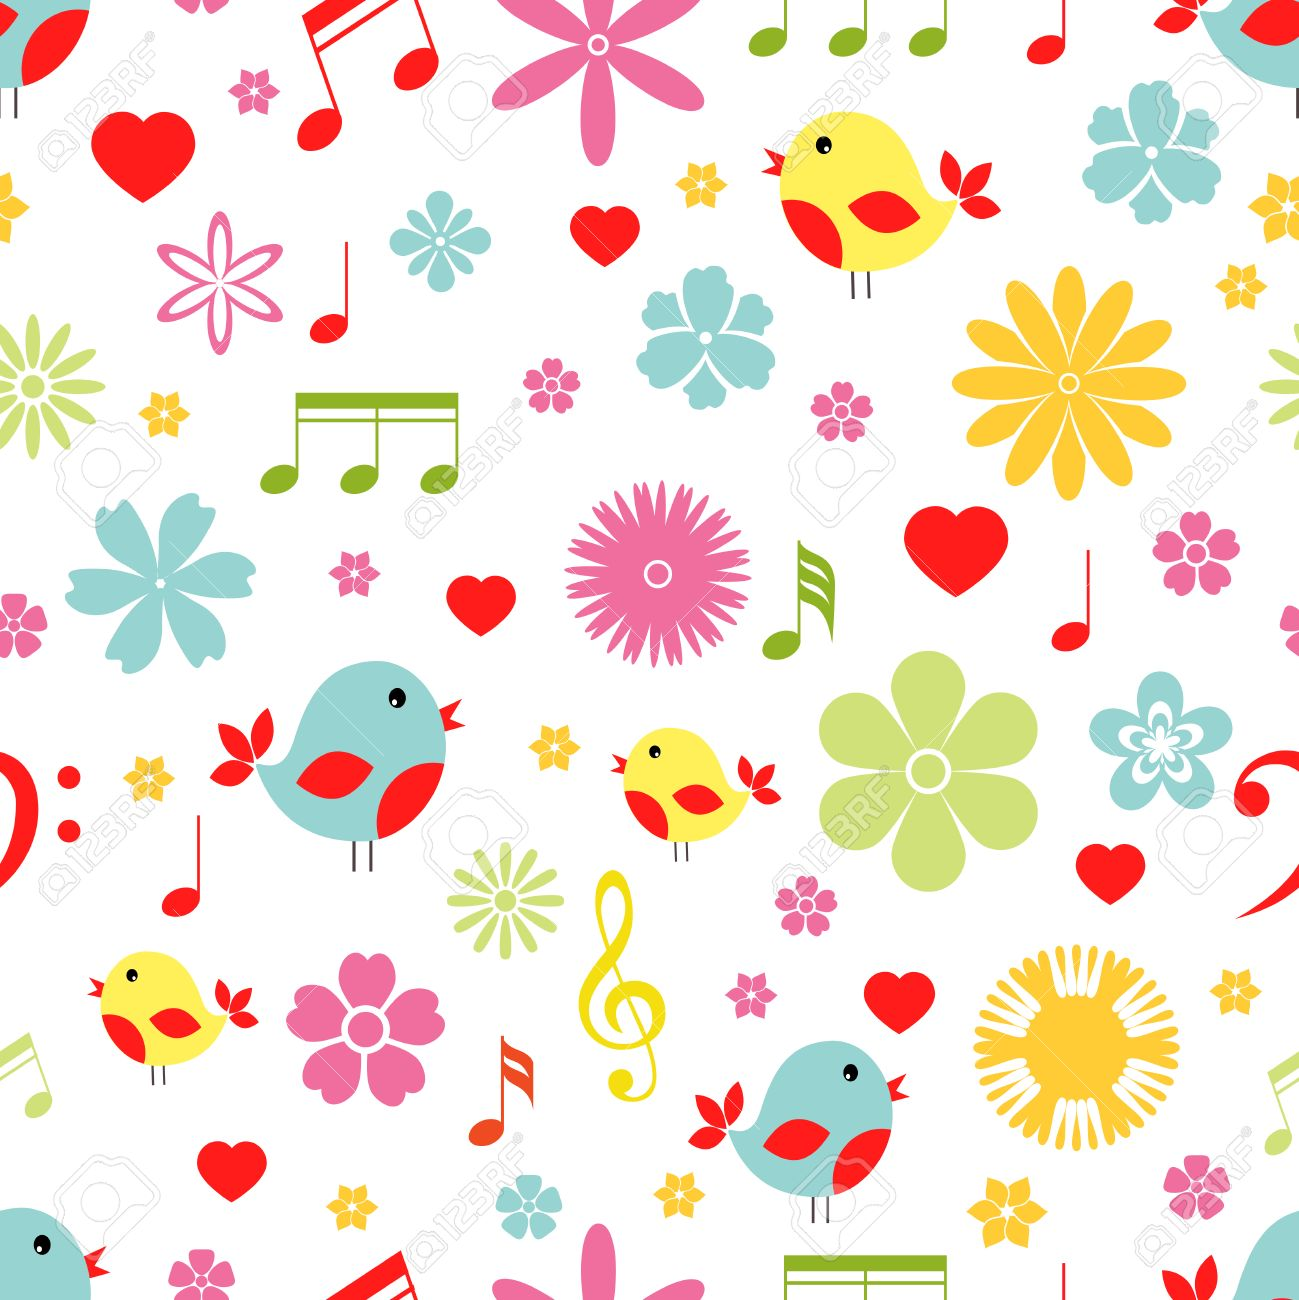 Colorful Spring Flowers Birds And Music Notes Seamless Background Pattern In Square Format Suitable For Tiles